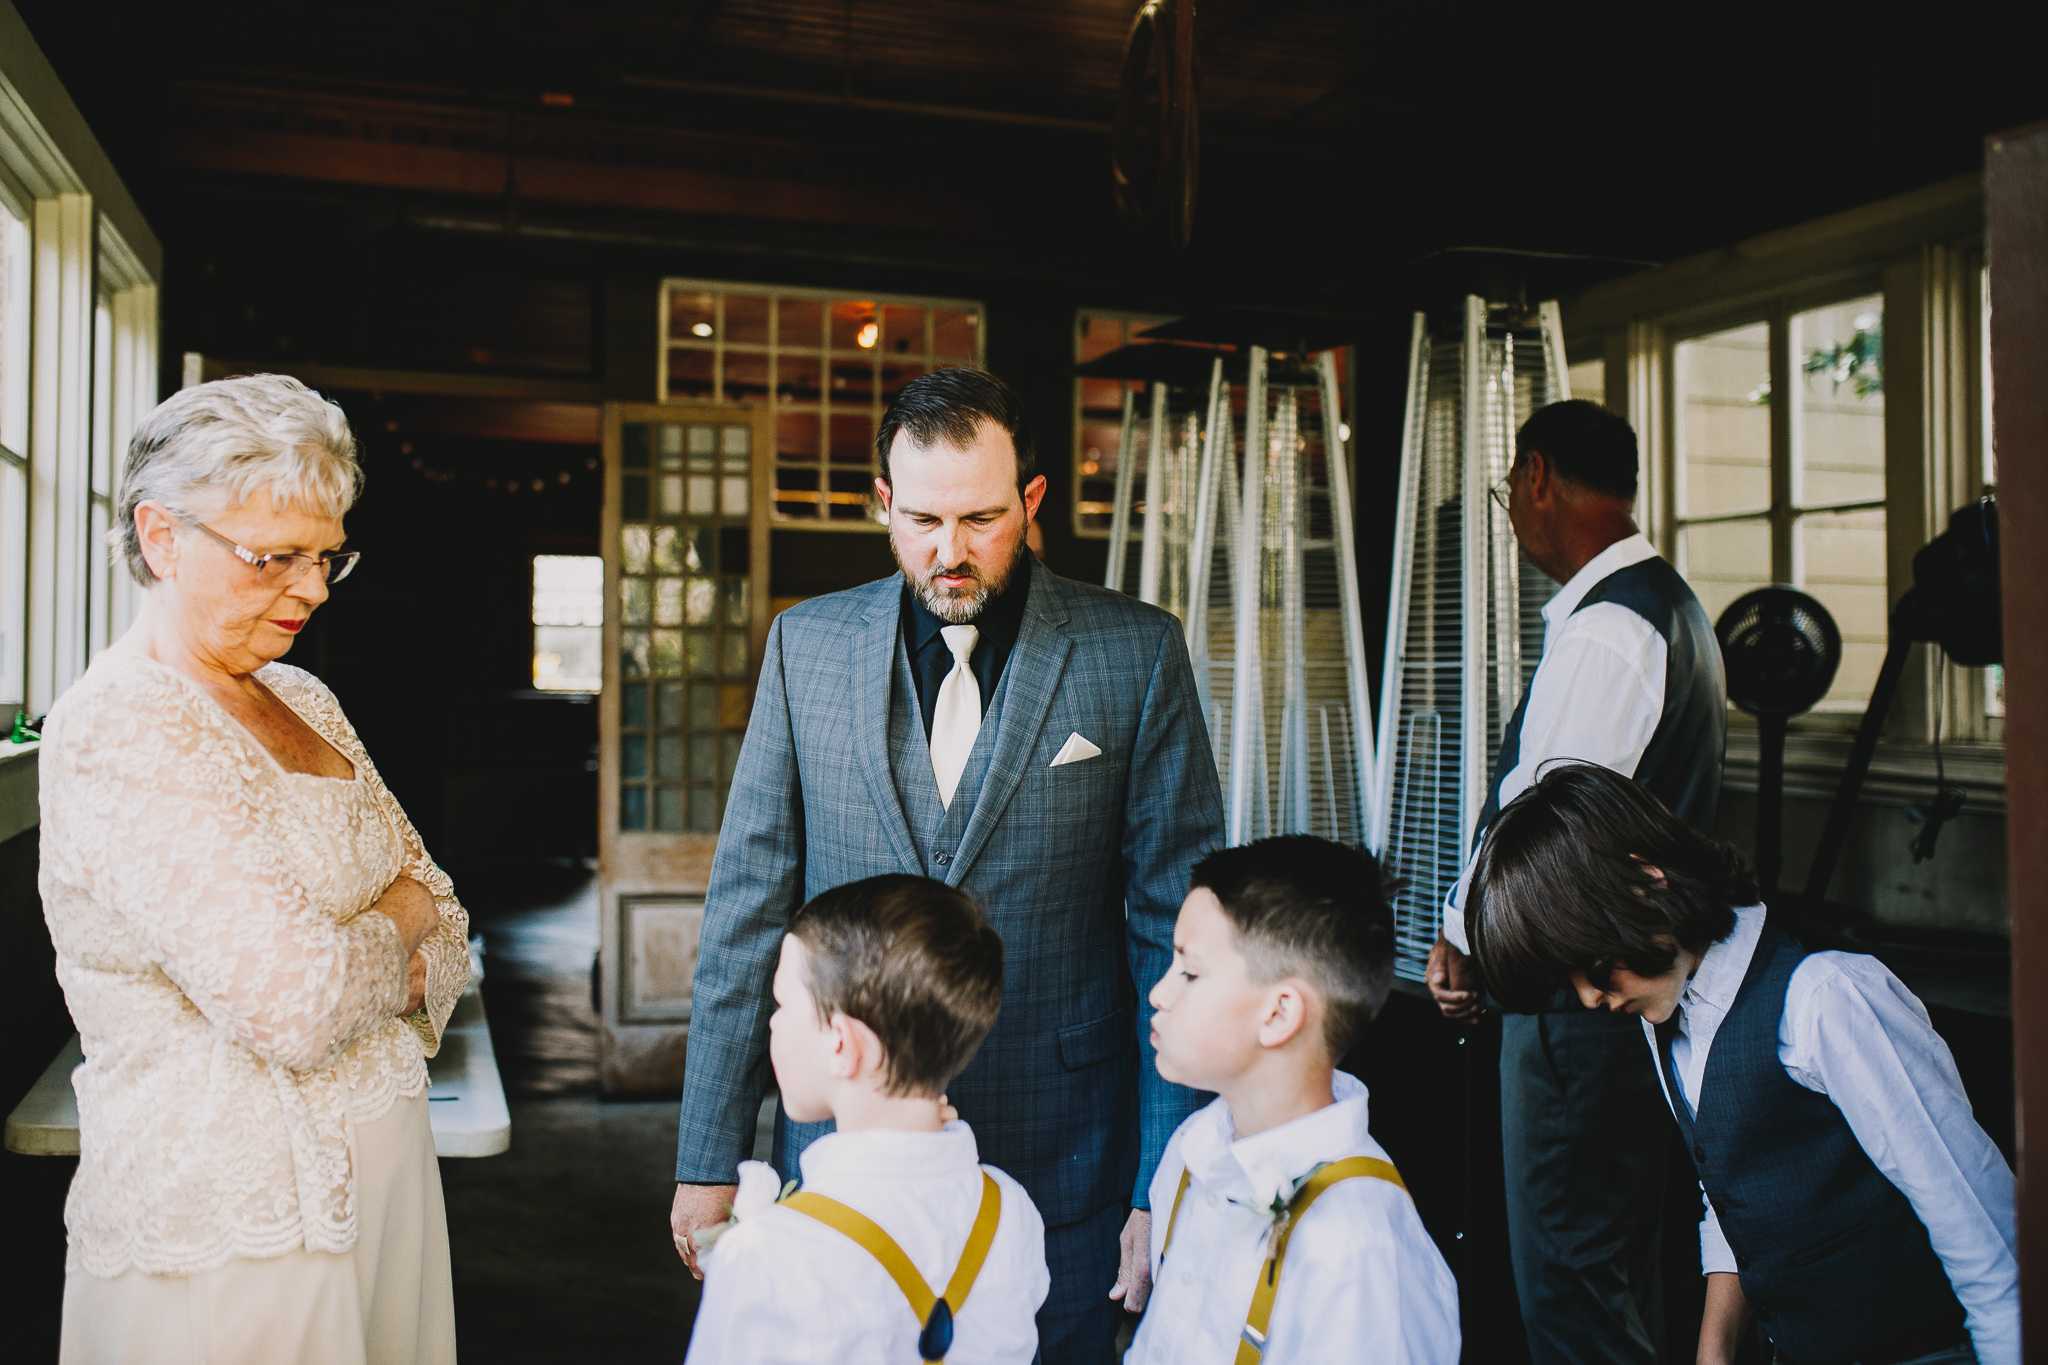 Archer Inspired Photography Sara and Aaron Winchester Mystery House NorCal San Jose California Wedding Photographer-79.jpg